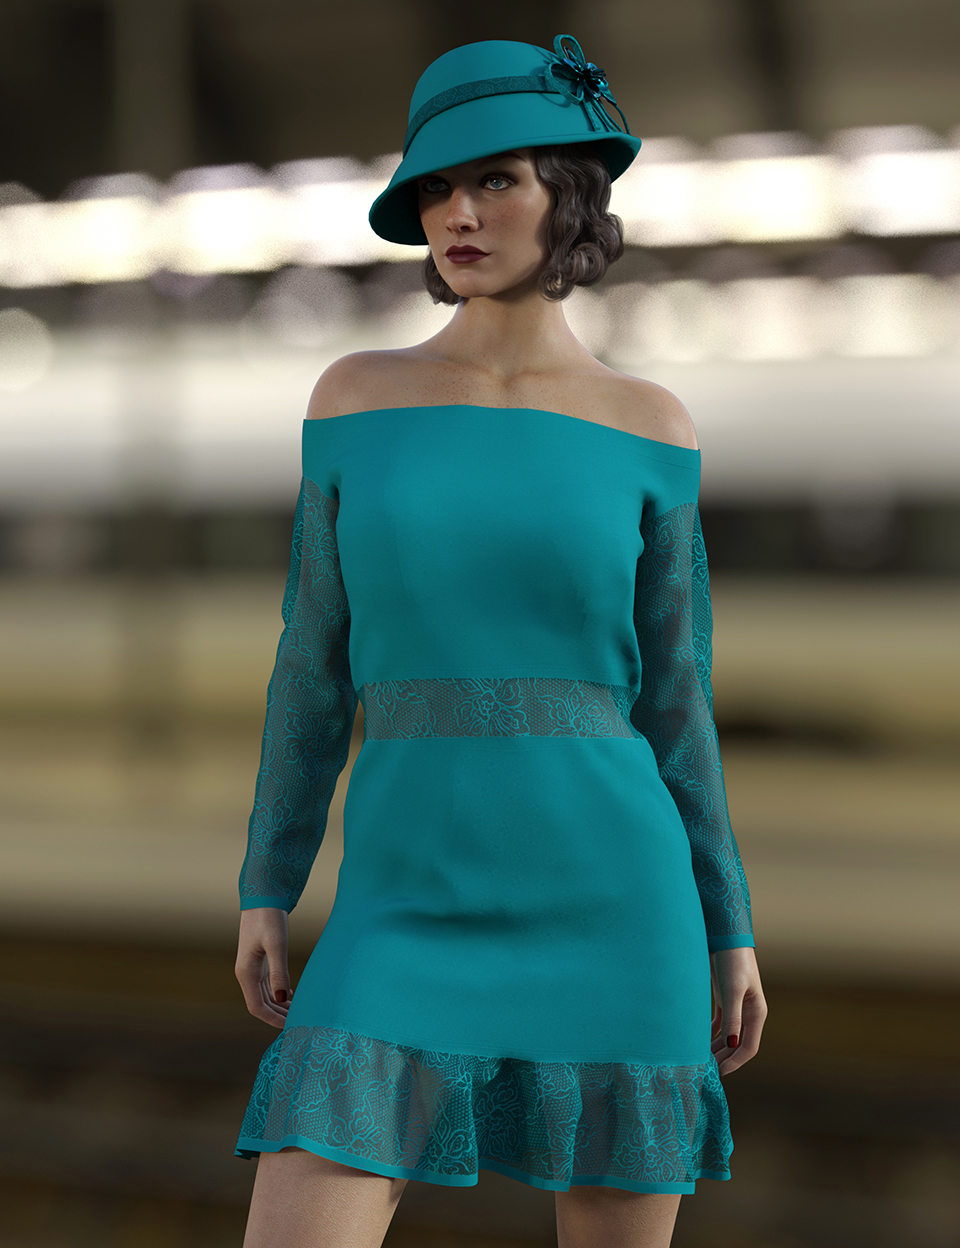 dForce Abby Outfit for Genesis 8 Females by: Nelmi, 3D Models by Daz 3D